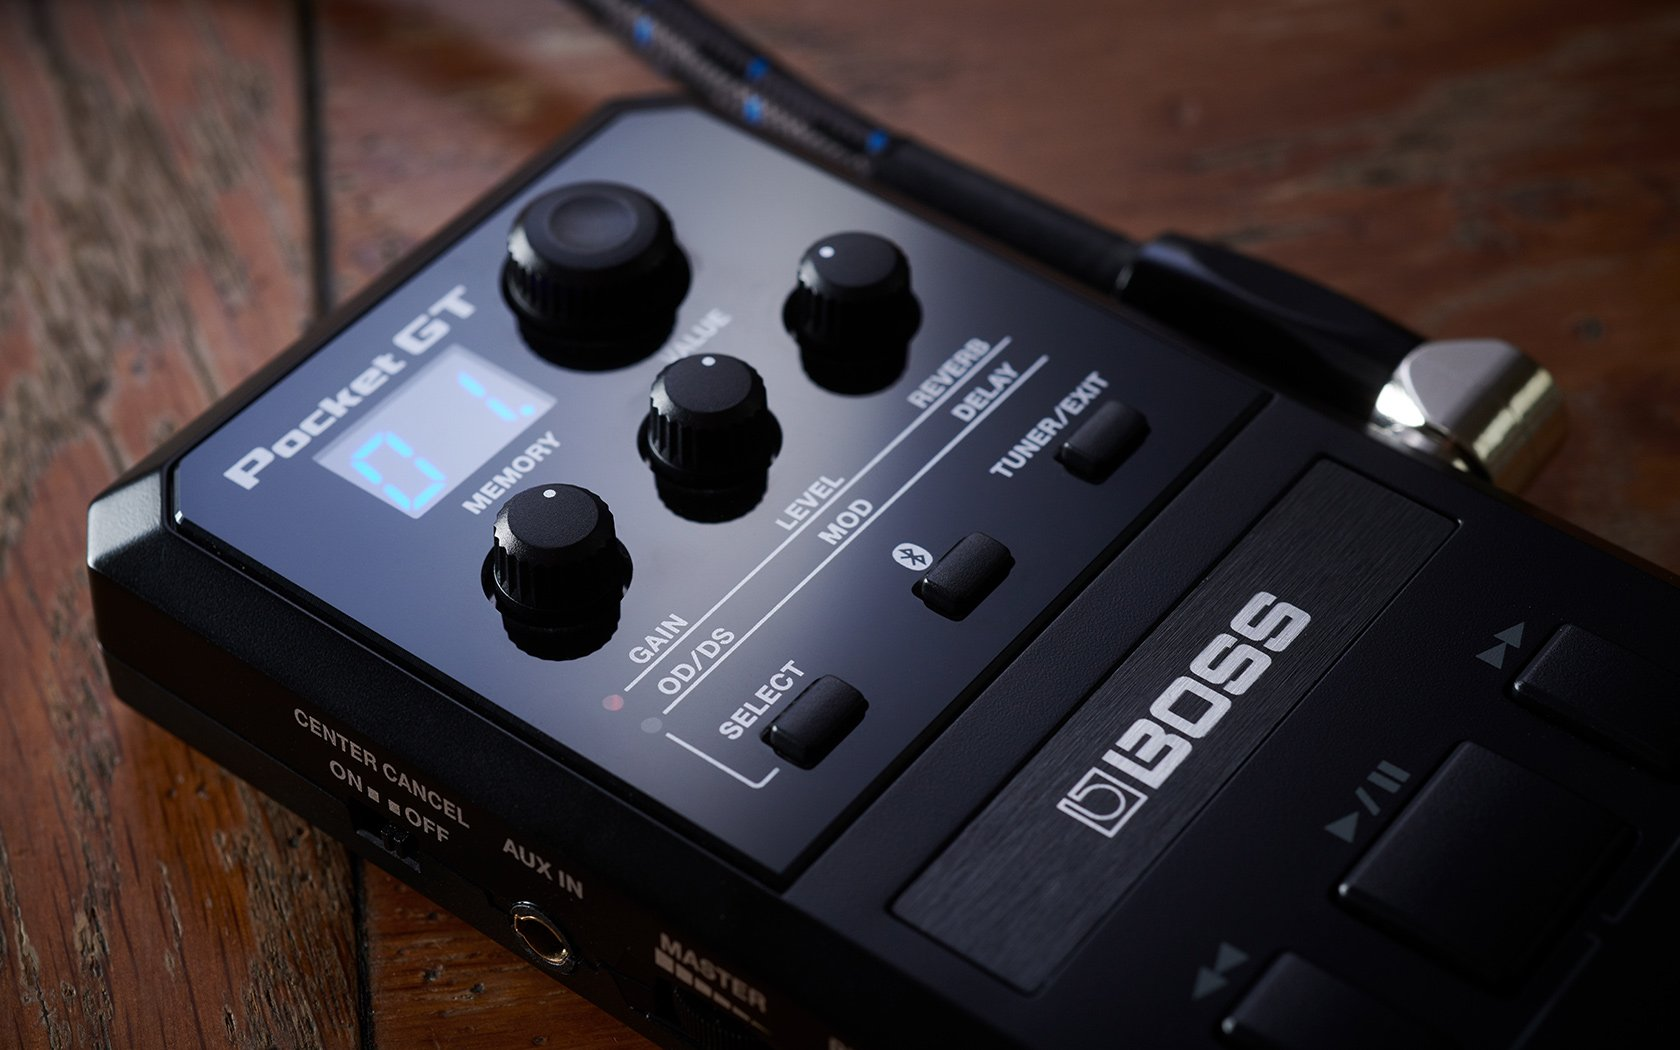 Boss Pocket GT - Pocket Effects Processor with Built-In YouTube Browser